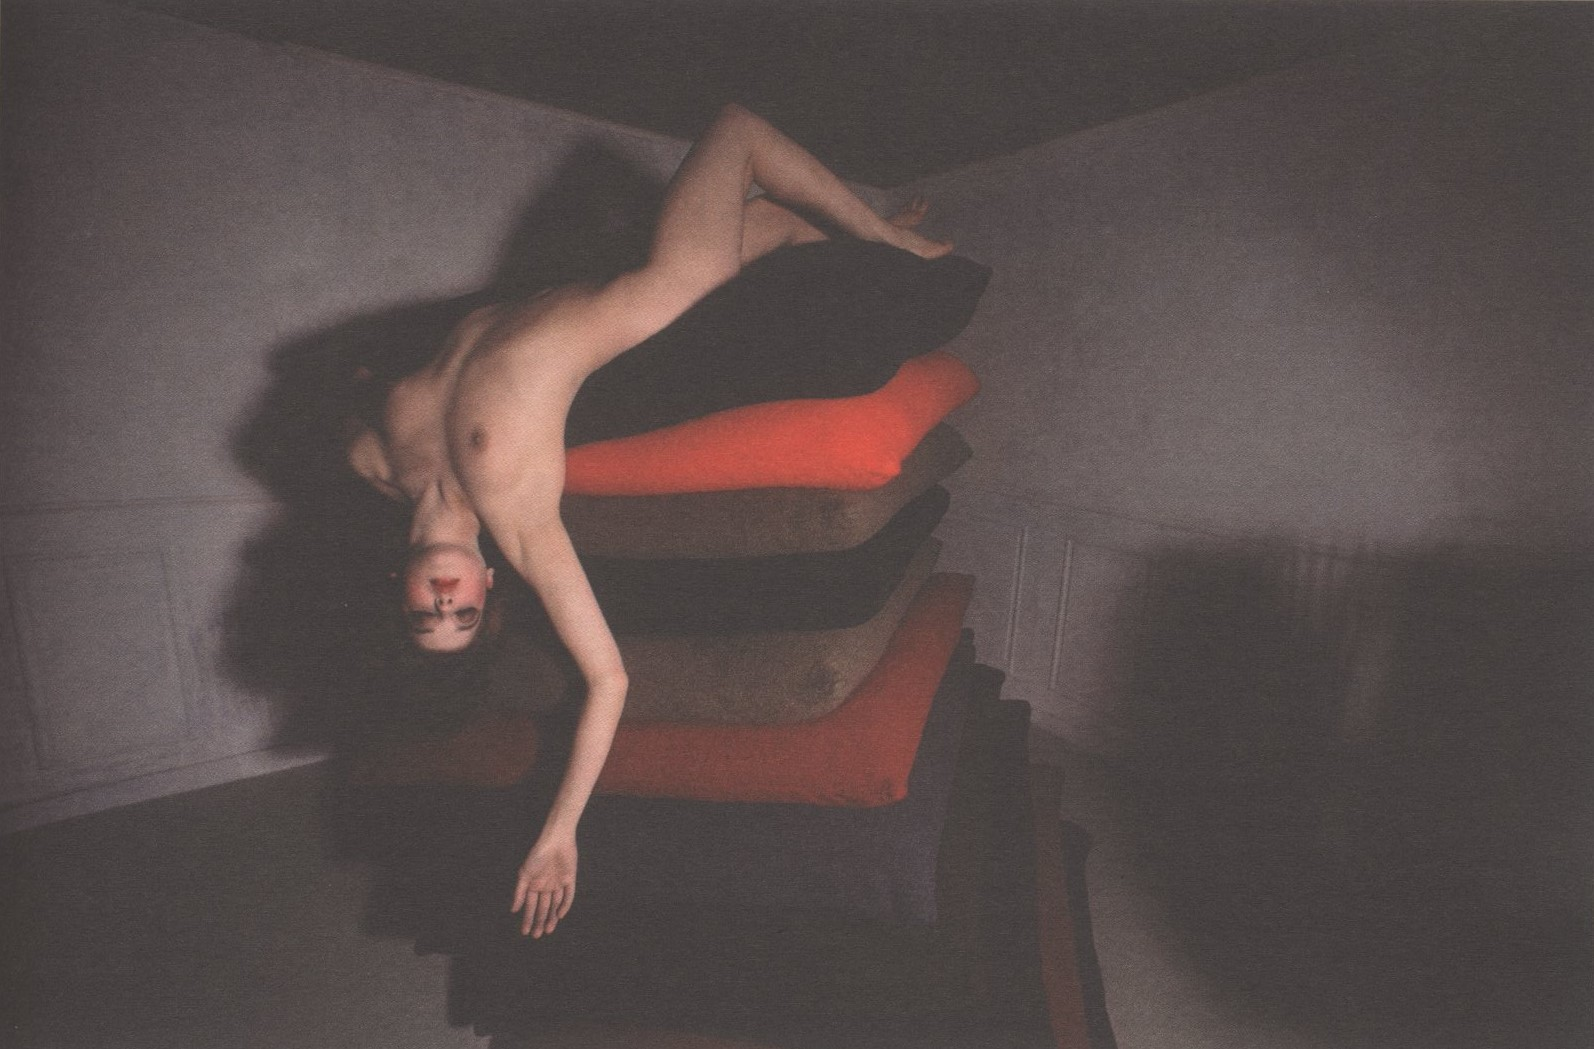 NICOLLE MEYER | PHOTOGRAPHY GUY BOURDIN | 1977 | PURPLE FASHION | ISSUE 4 | FALL/WINTER 2005/2006